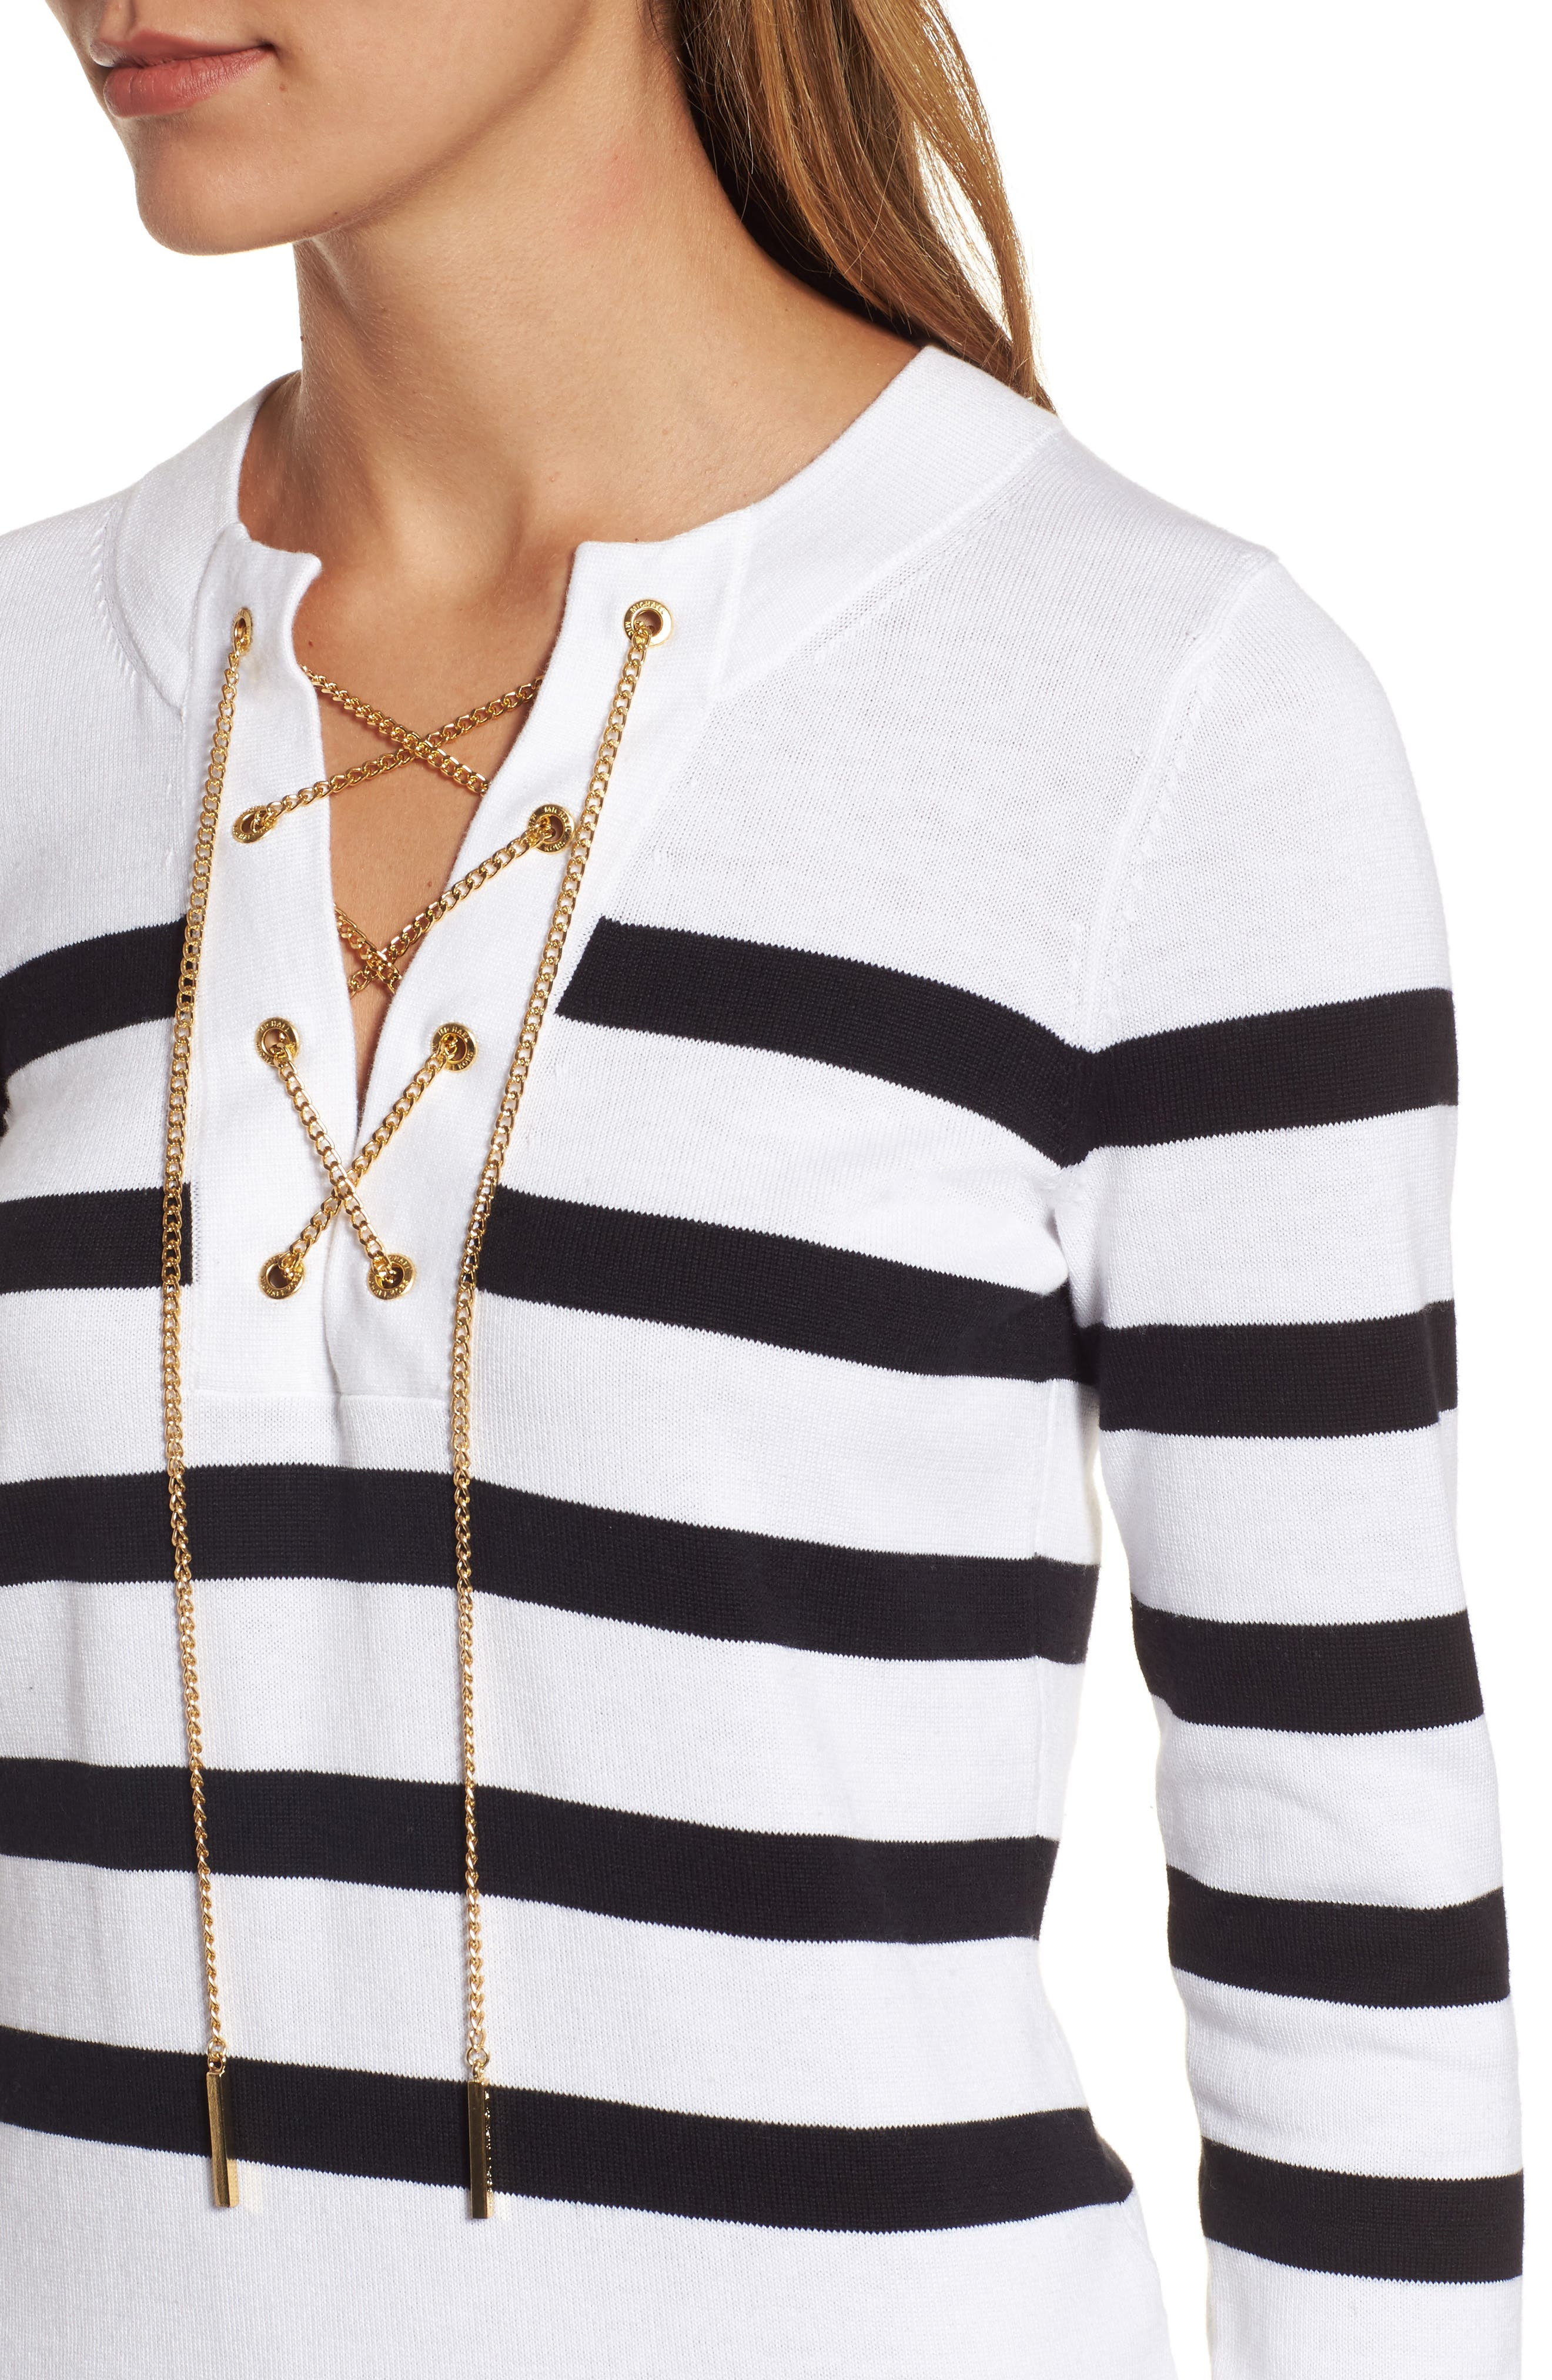 Laced Chain Tunic,                             Alternate thumbnail 4, color,                             White/ Black